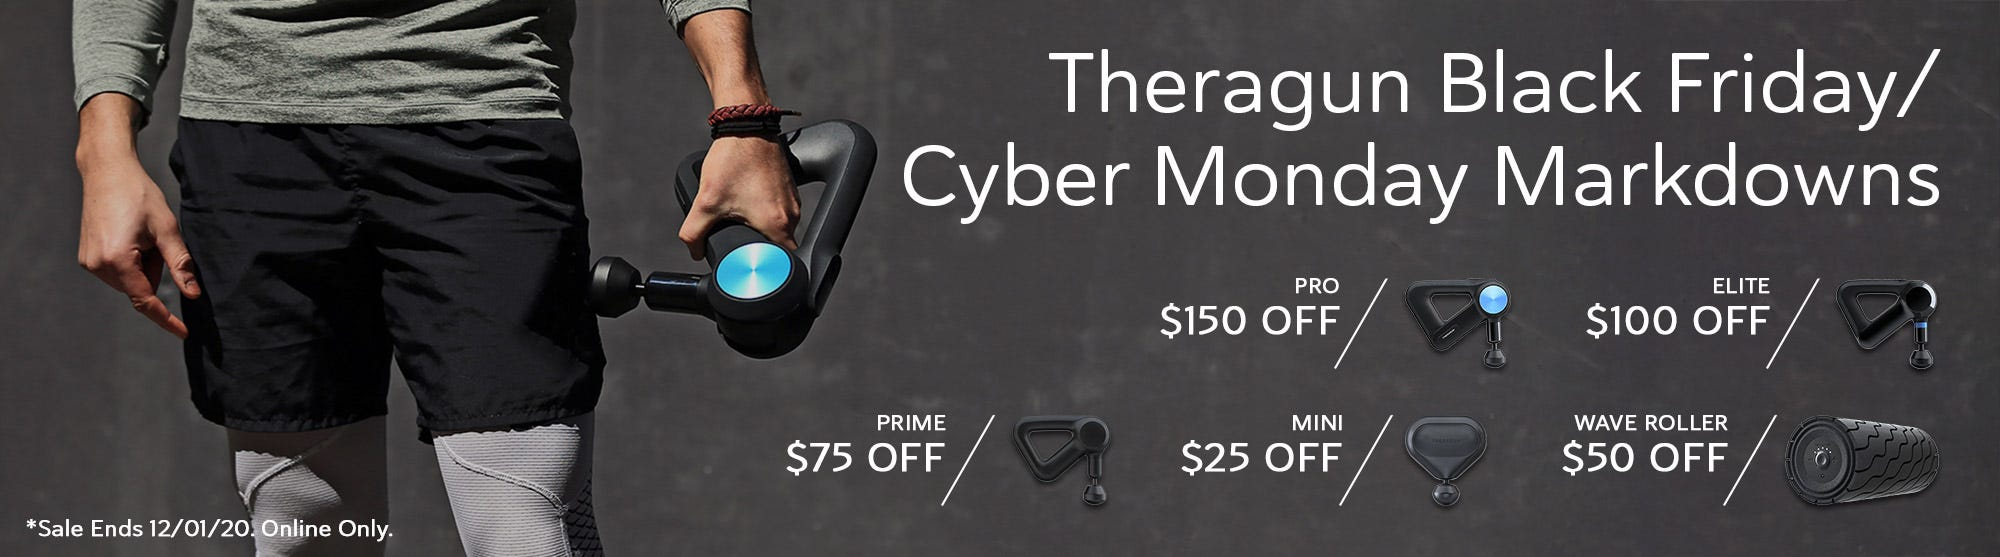 Theragun Black Friday Price Reductions